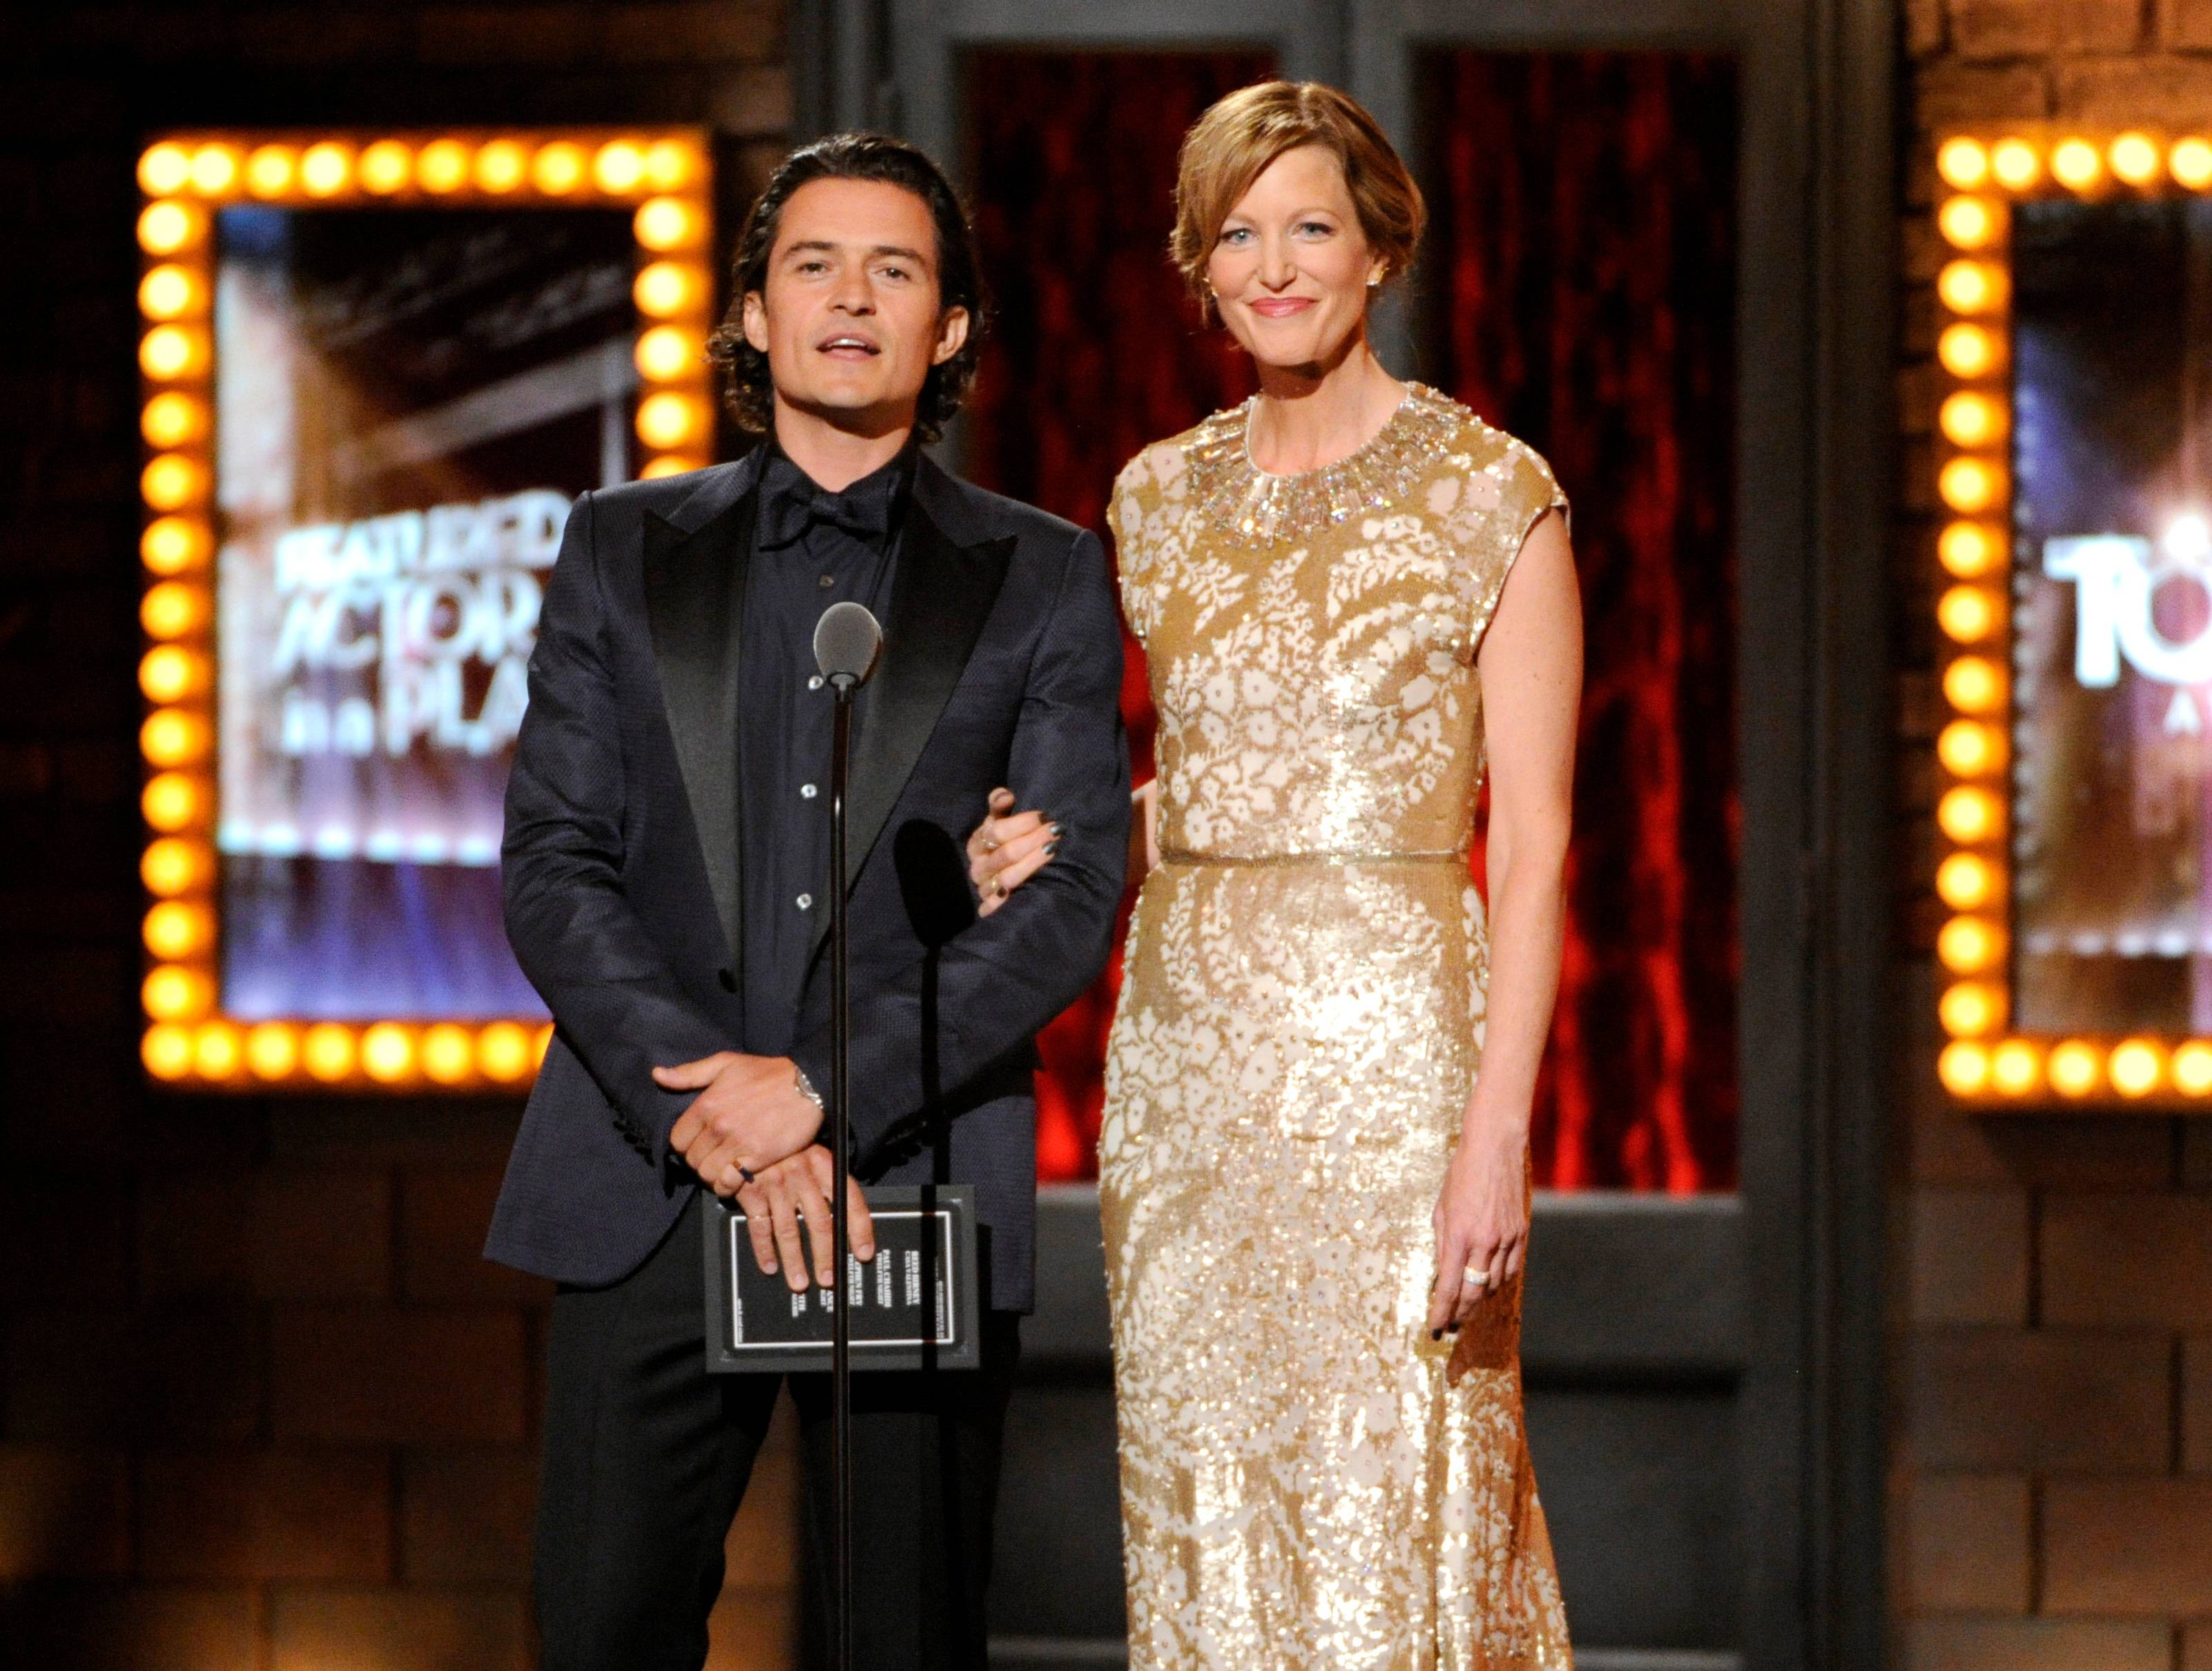 Orlando Bloom and Anna Gunn speak onstage at the 68th annual Tony Awards at Radio City Music Hall on Sunday.